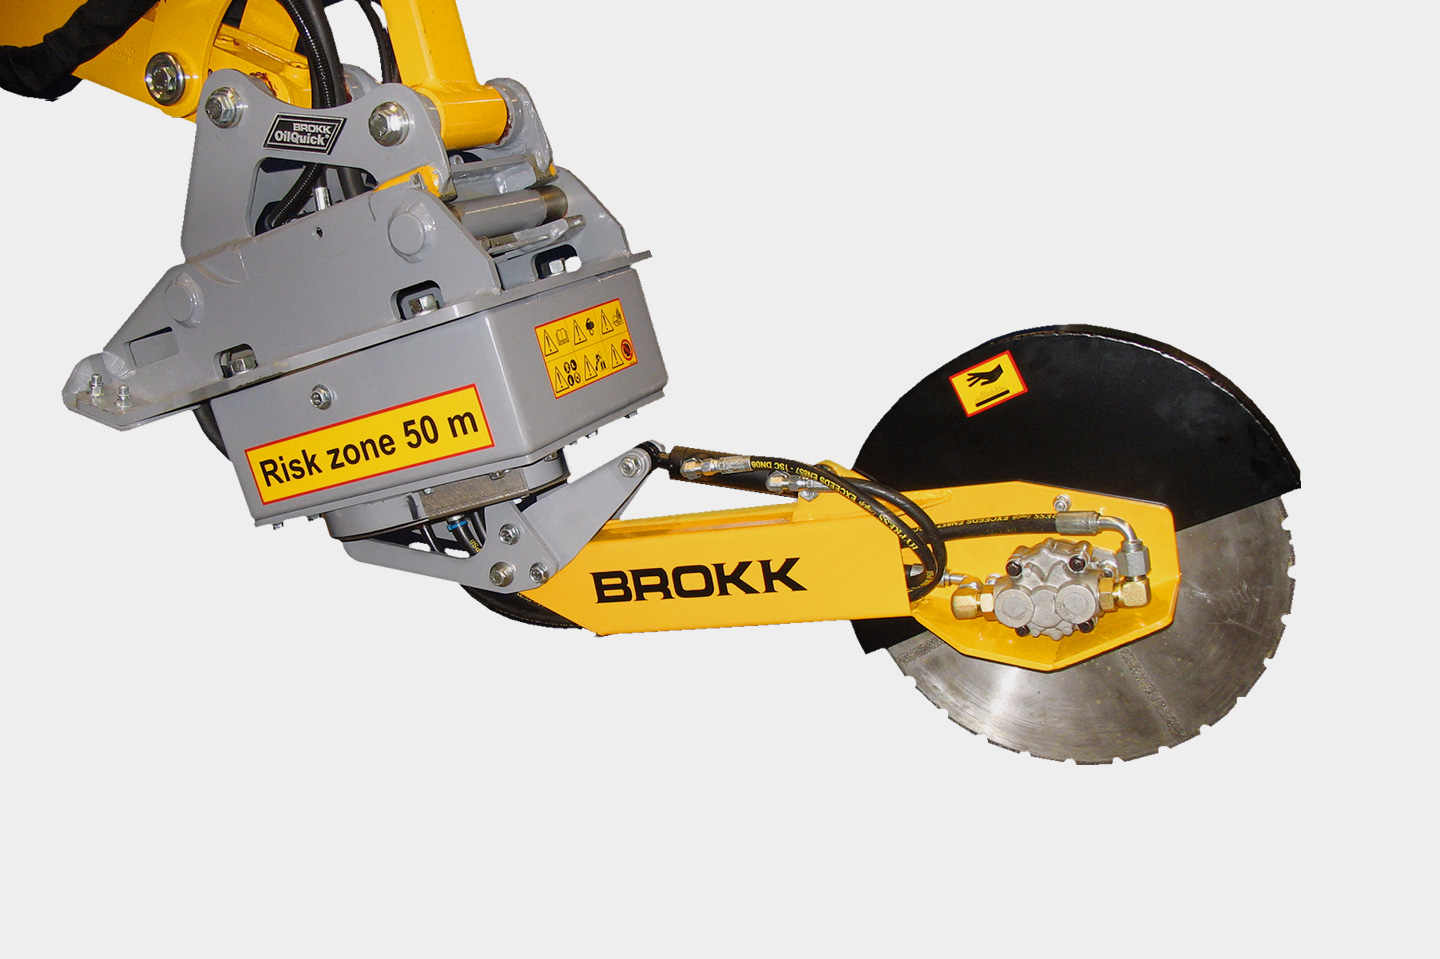 Brokk 520D - Brokk Global